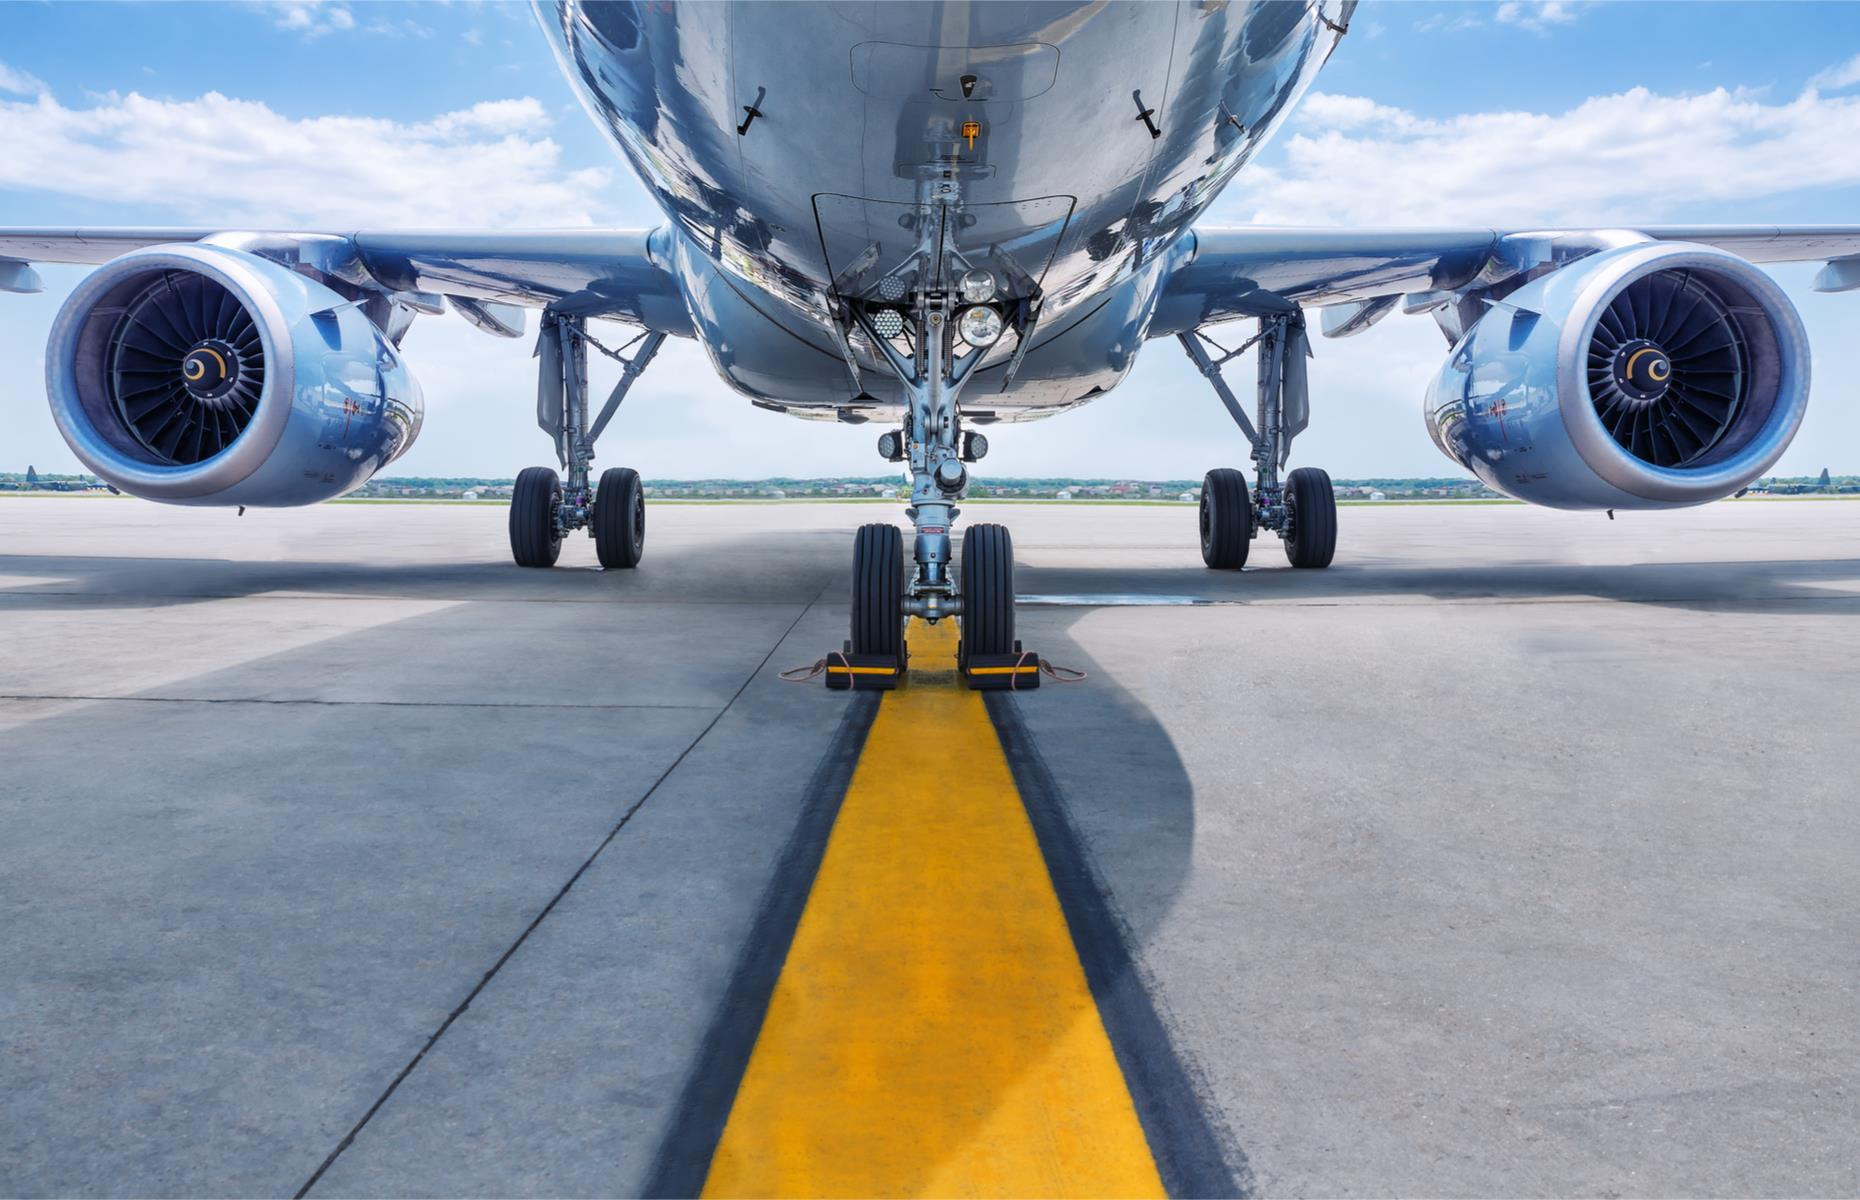 """Slide 22 of 63: """"Airlines and airports like to be 'friendly neighbors',"""" says Pete ofSurf Air. """"Power is reduced as soon as it can be to reduce noise. An aircraft needs a lot of power from the engines to get off the ground but once airborne the amount of power needed can be reduced – the climb to cruising altitude will normally be much less steep than take-off."""""""